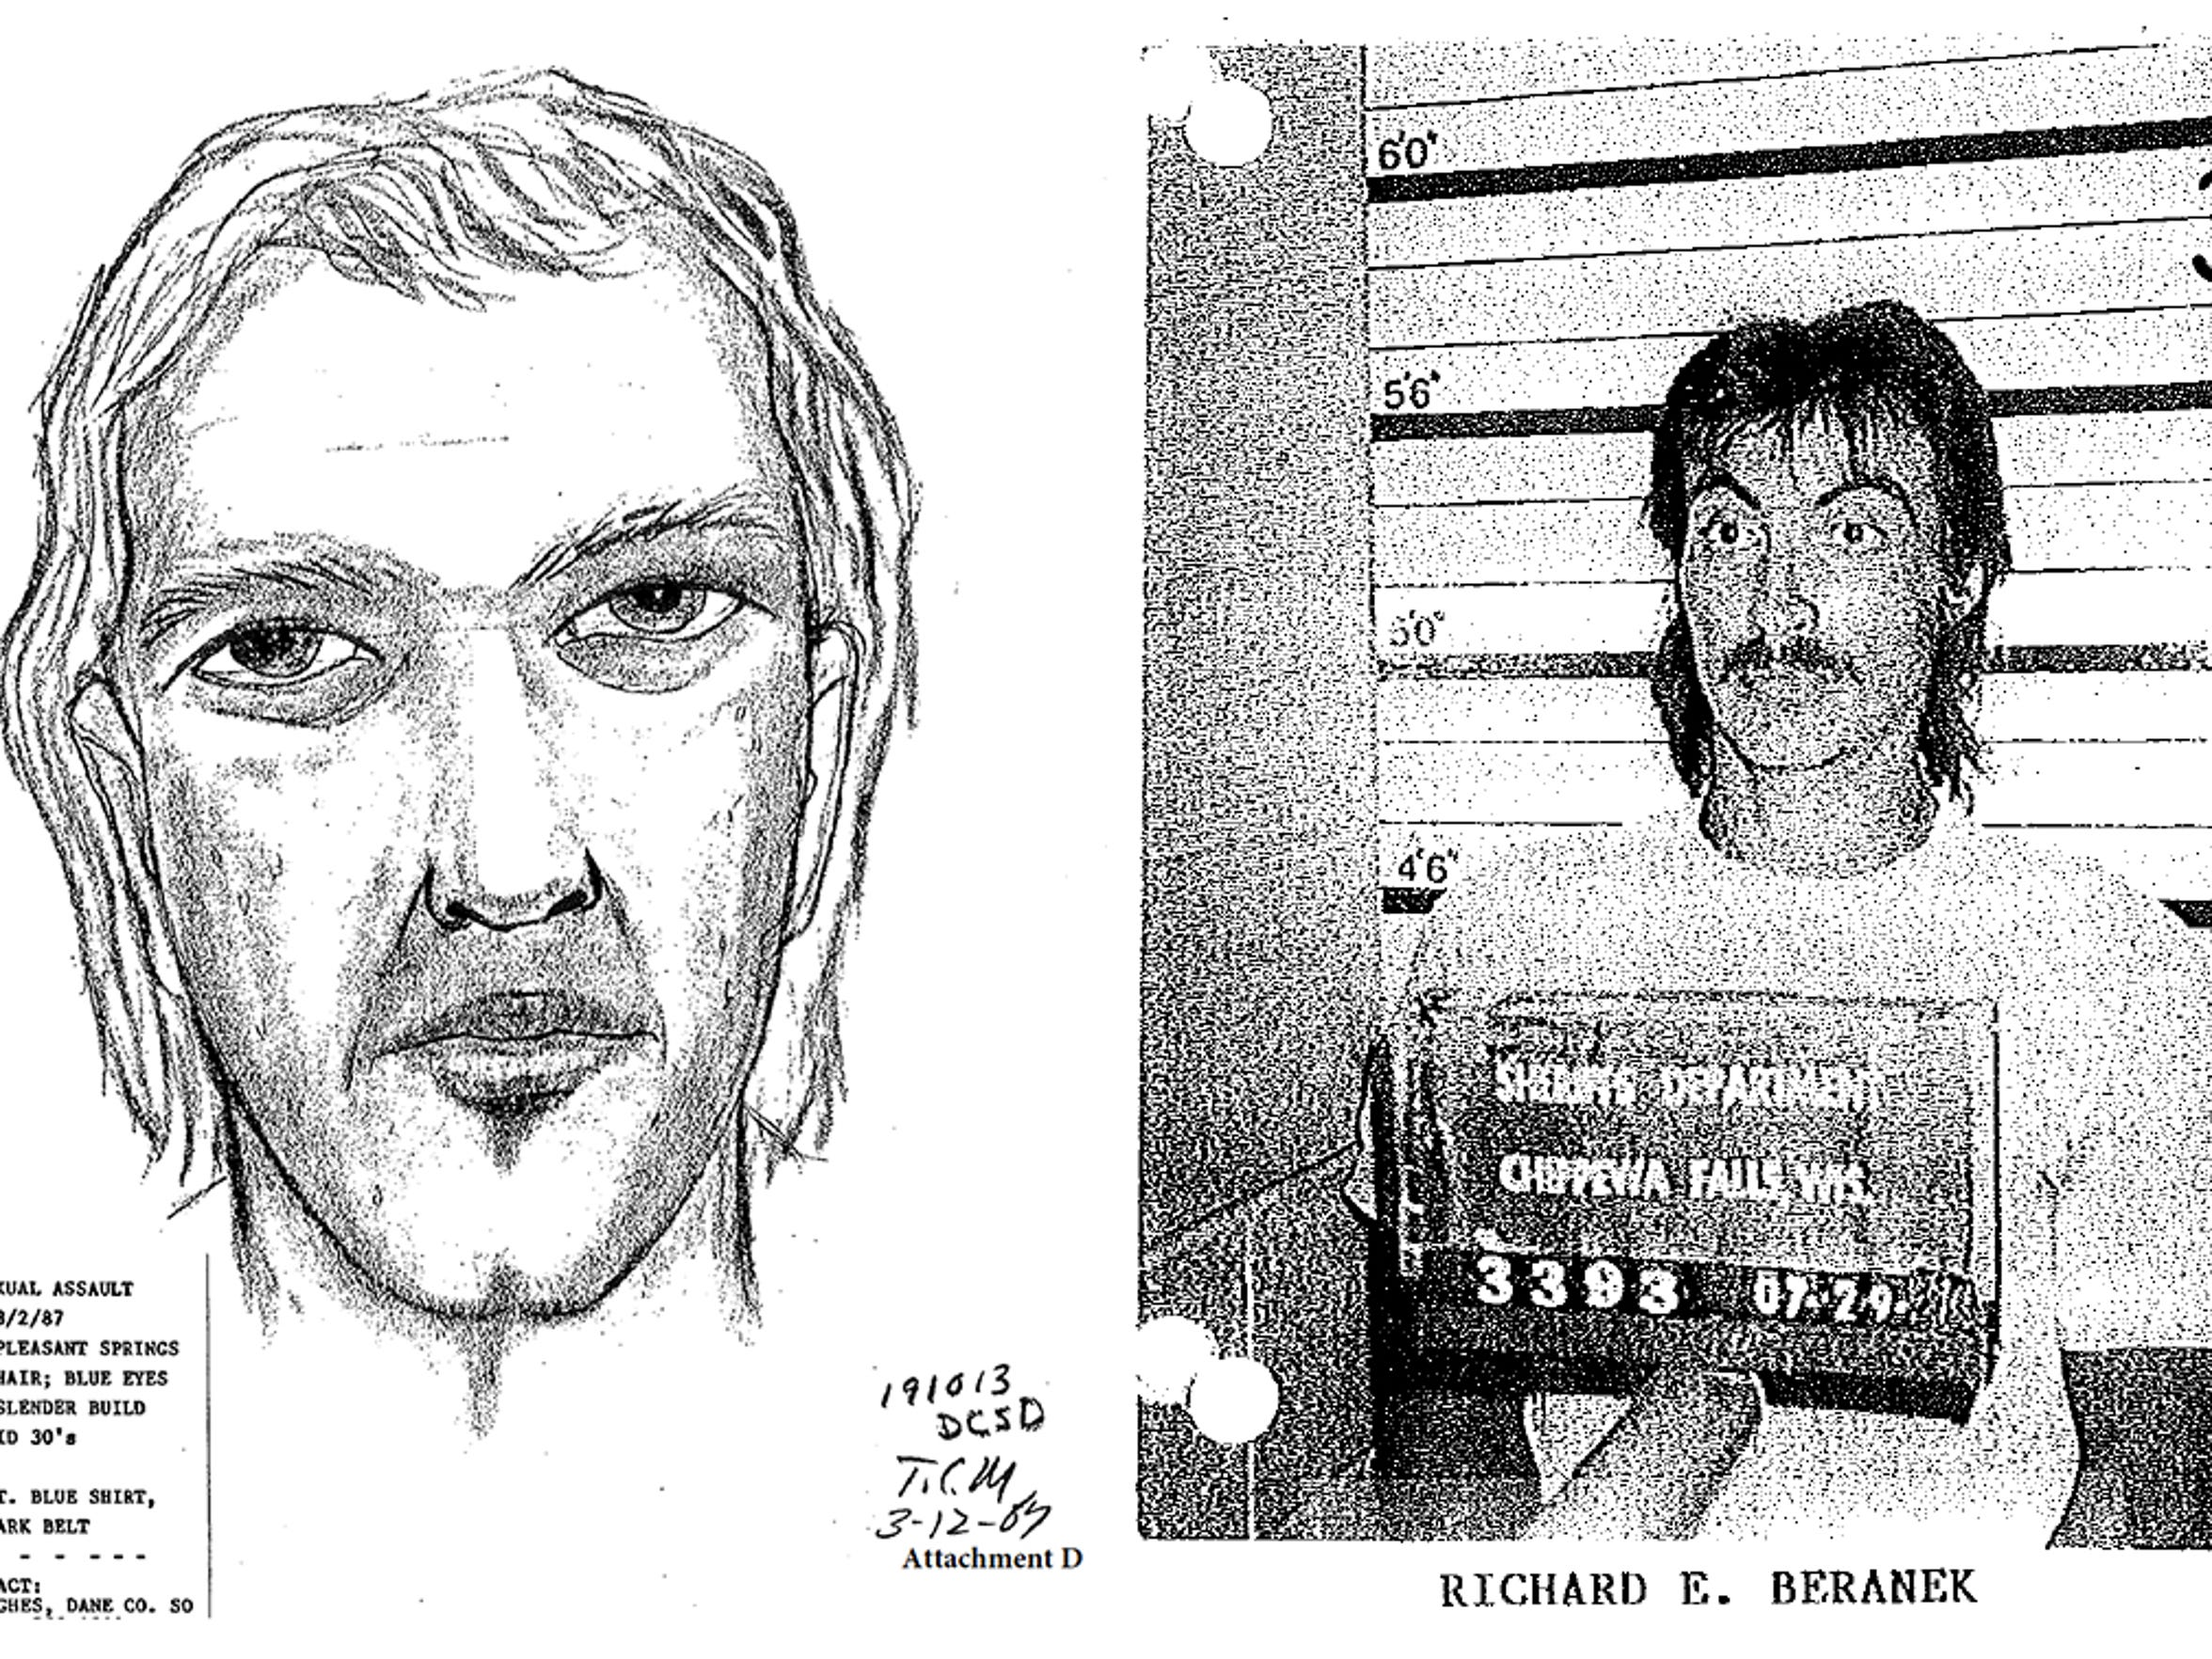 This artist's sketch, left, was produced in 1987 by